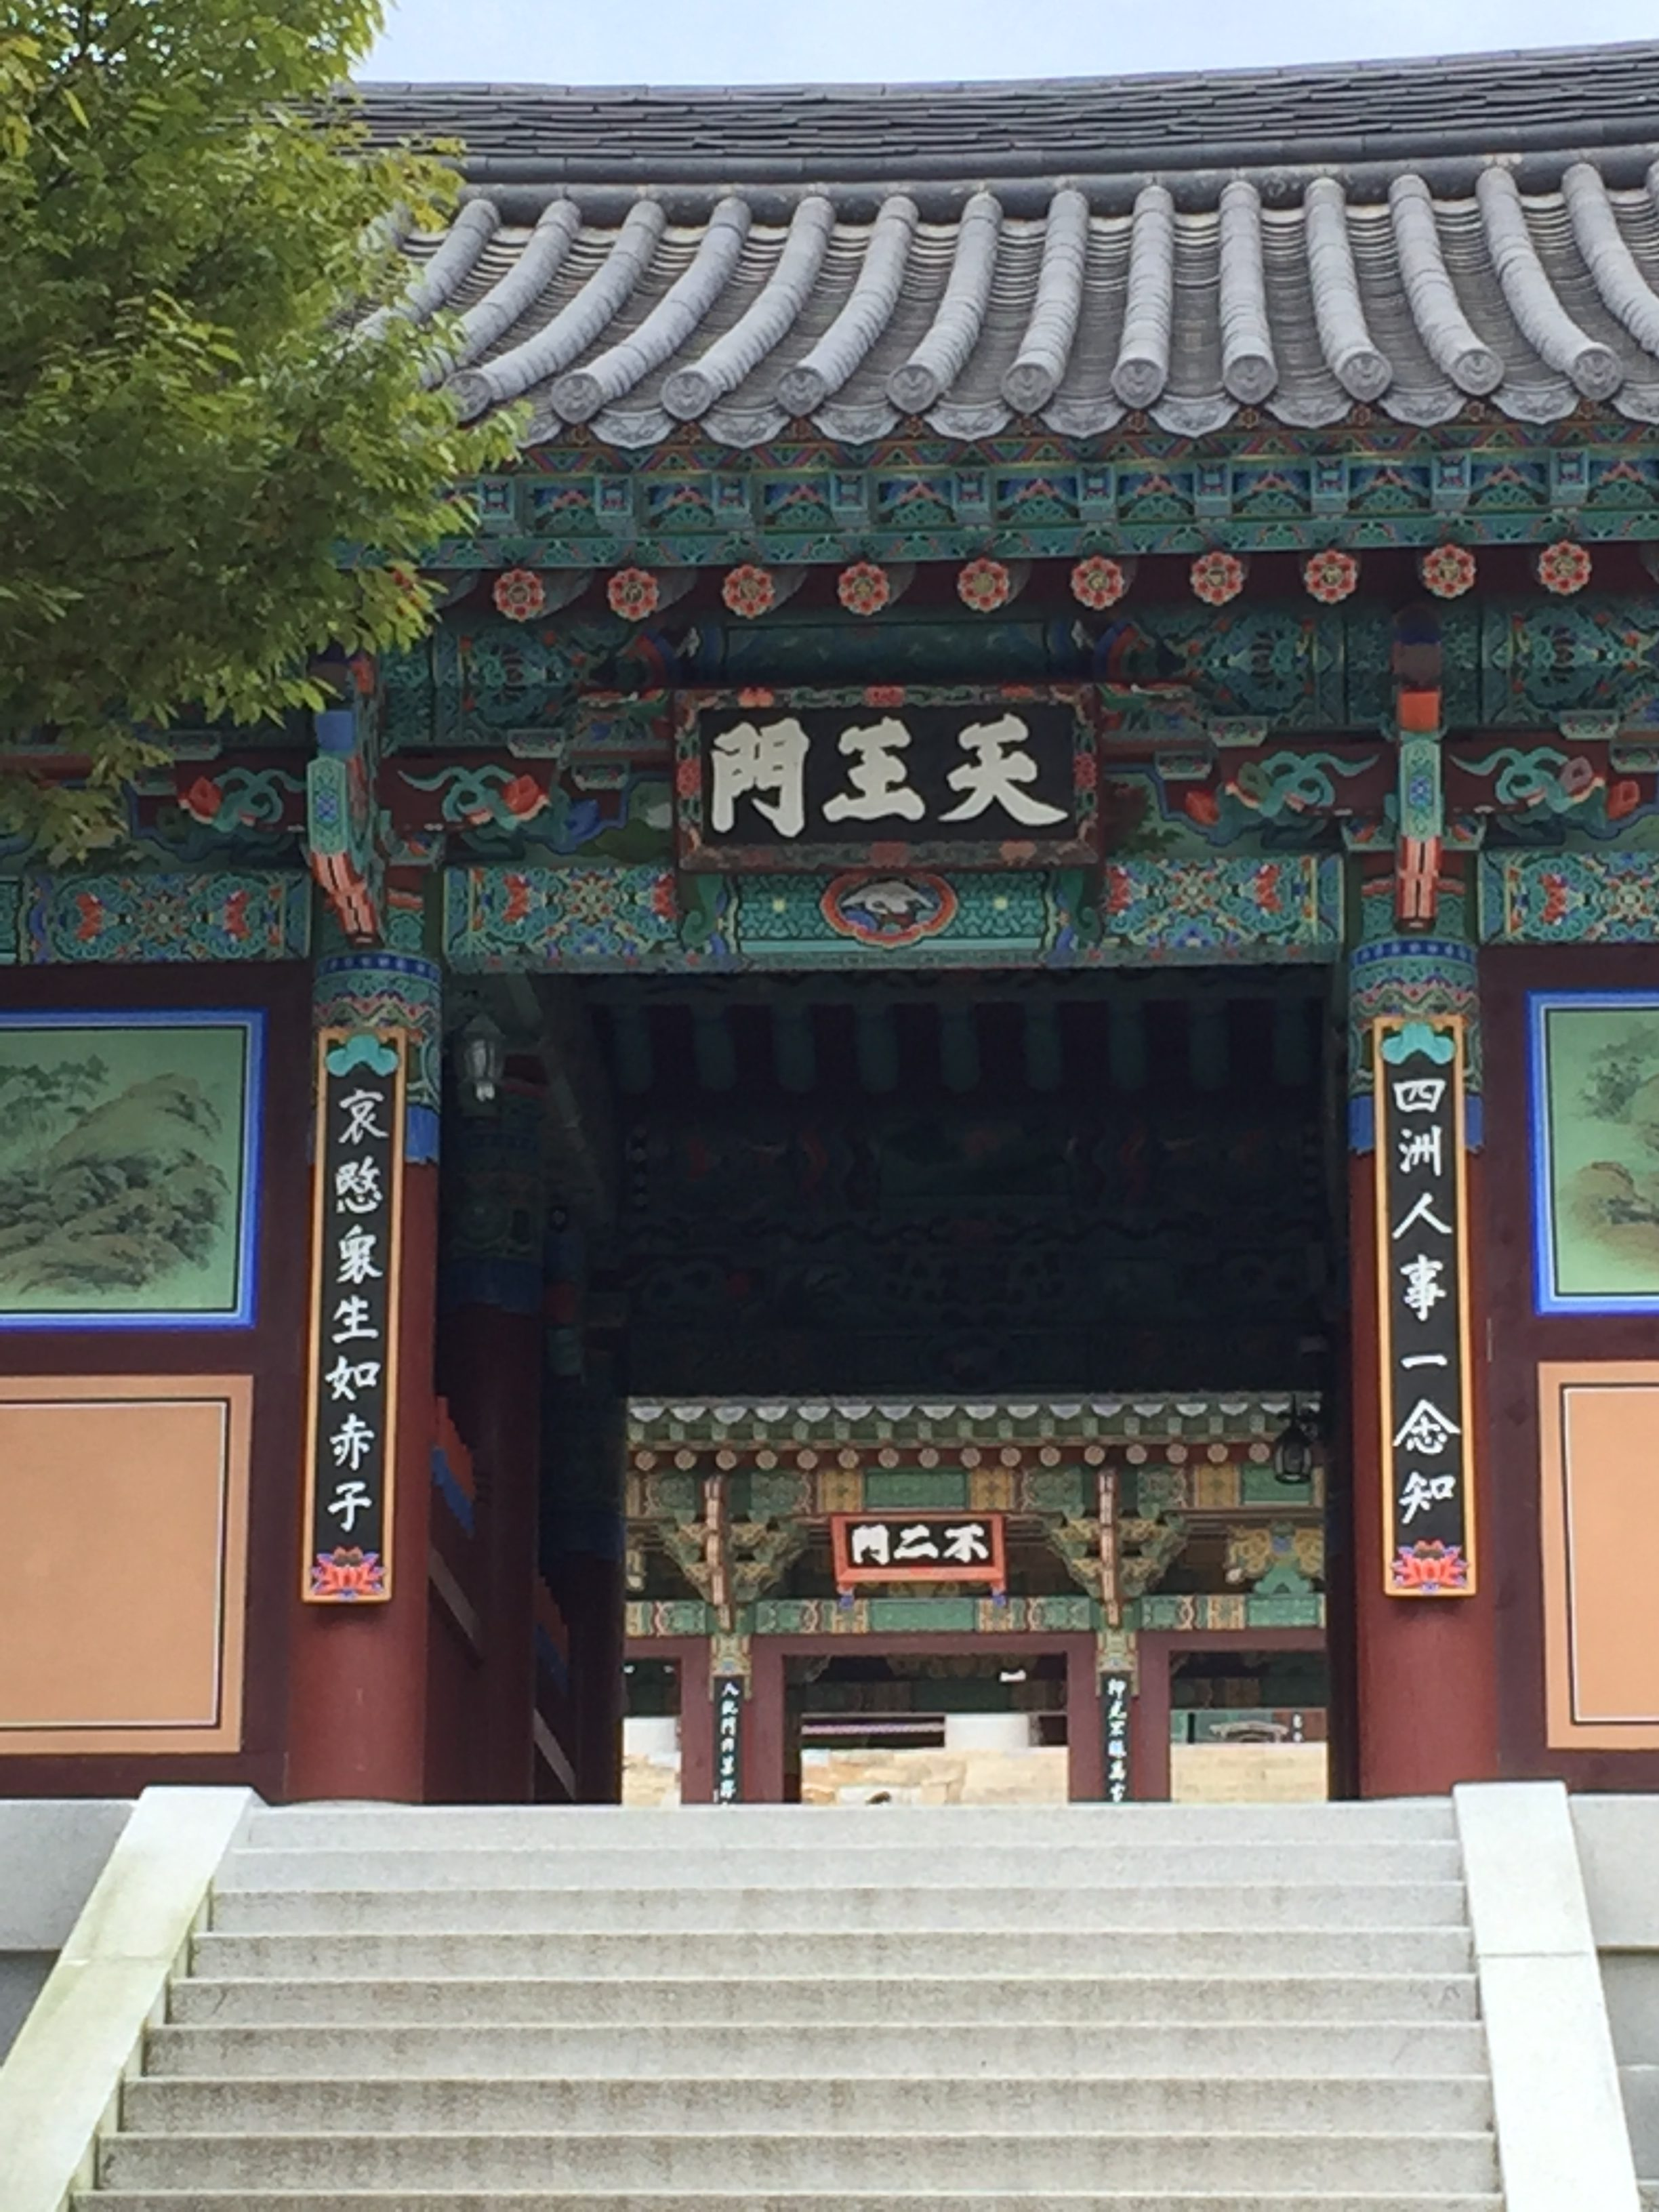 beomeosa temple second gate - Beomeosa Cheonwangmun, or Gate of the Four Heavenly Kings